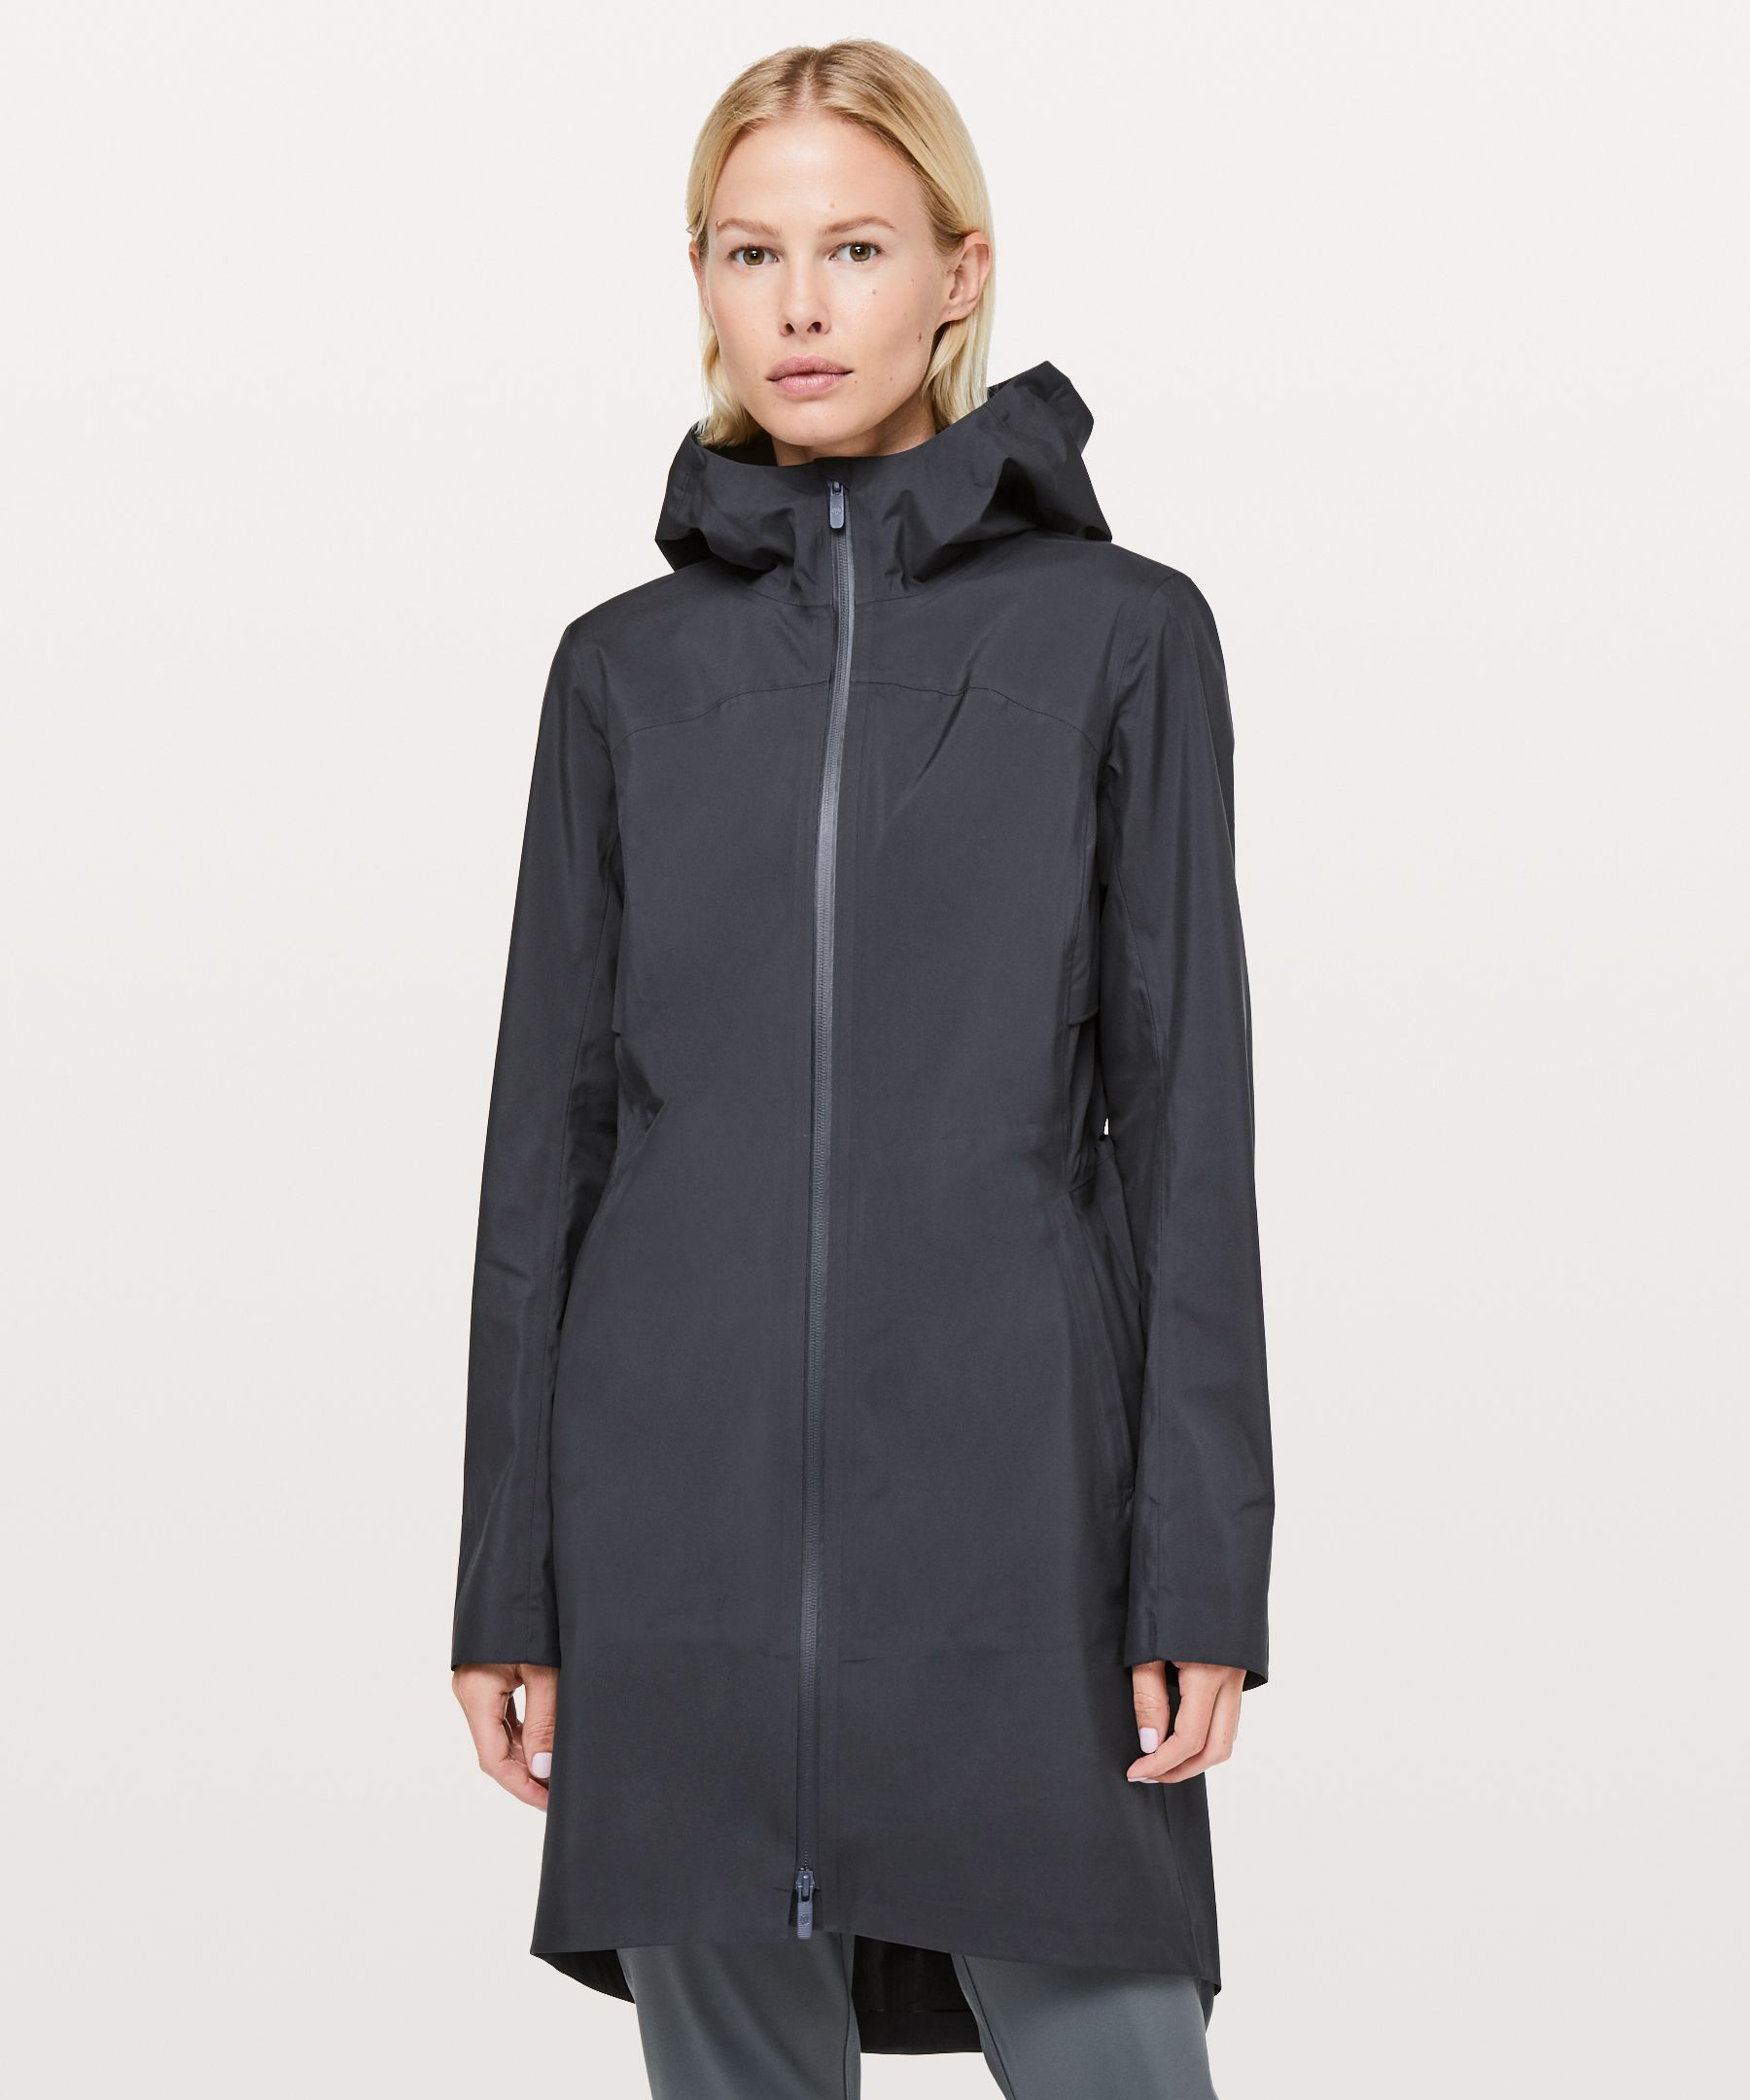 Rain Rules Jacket by Lululemon